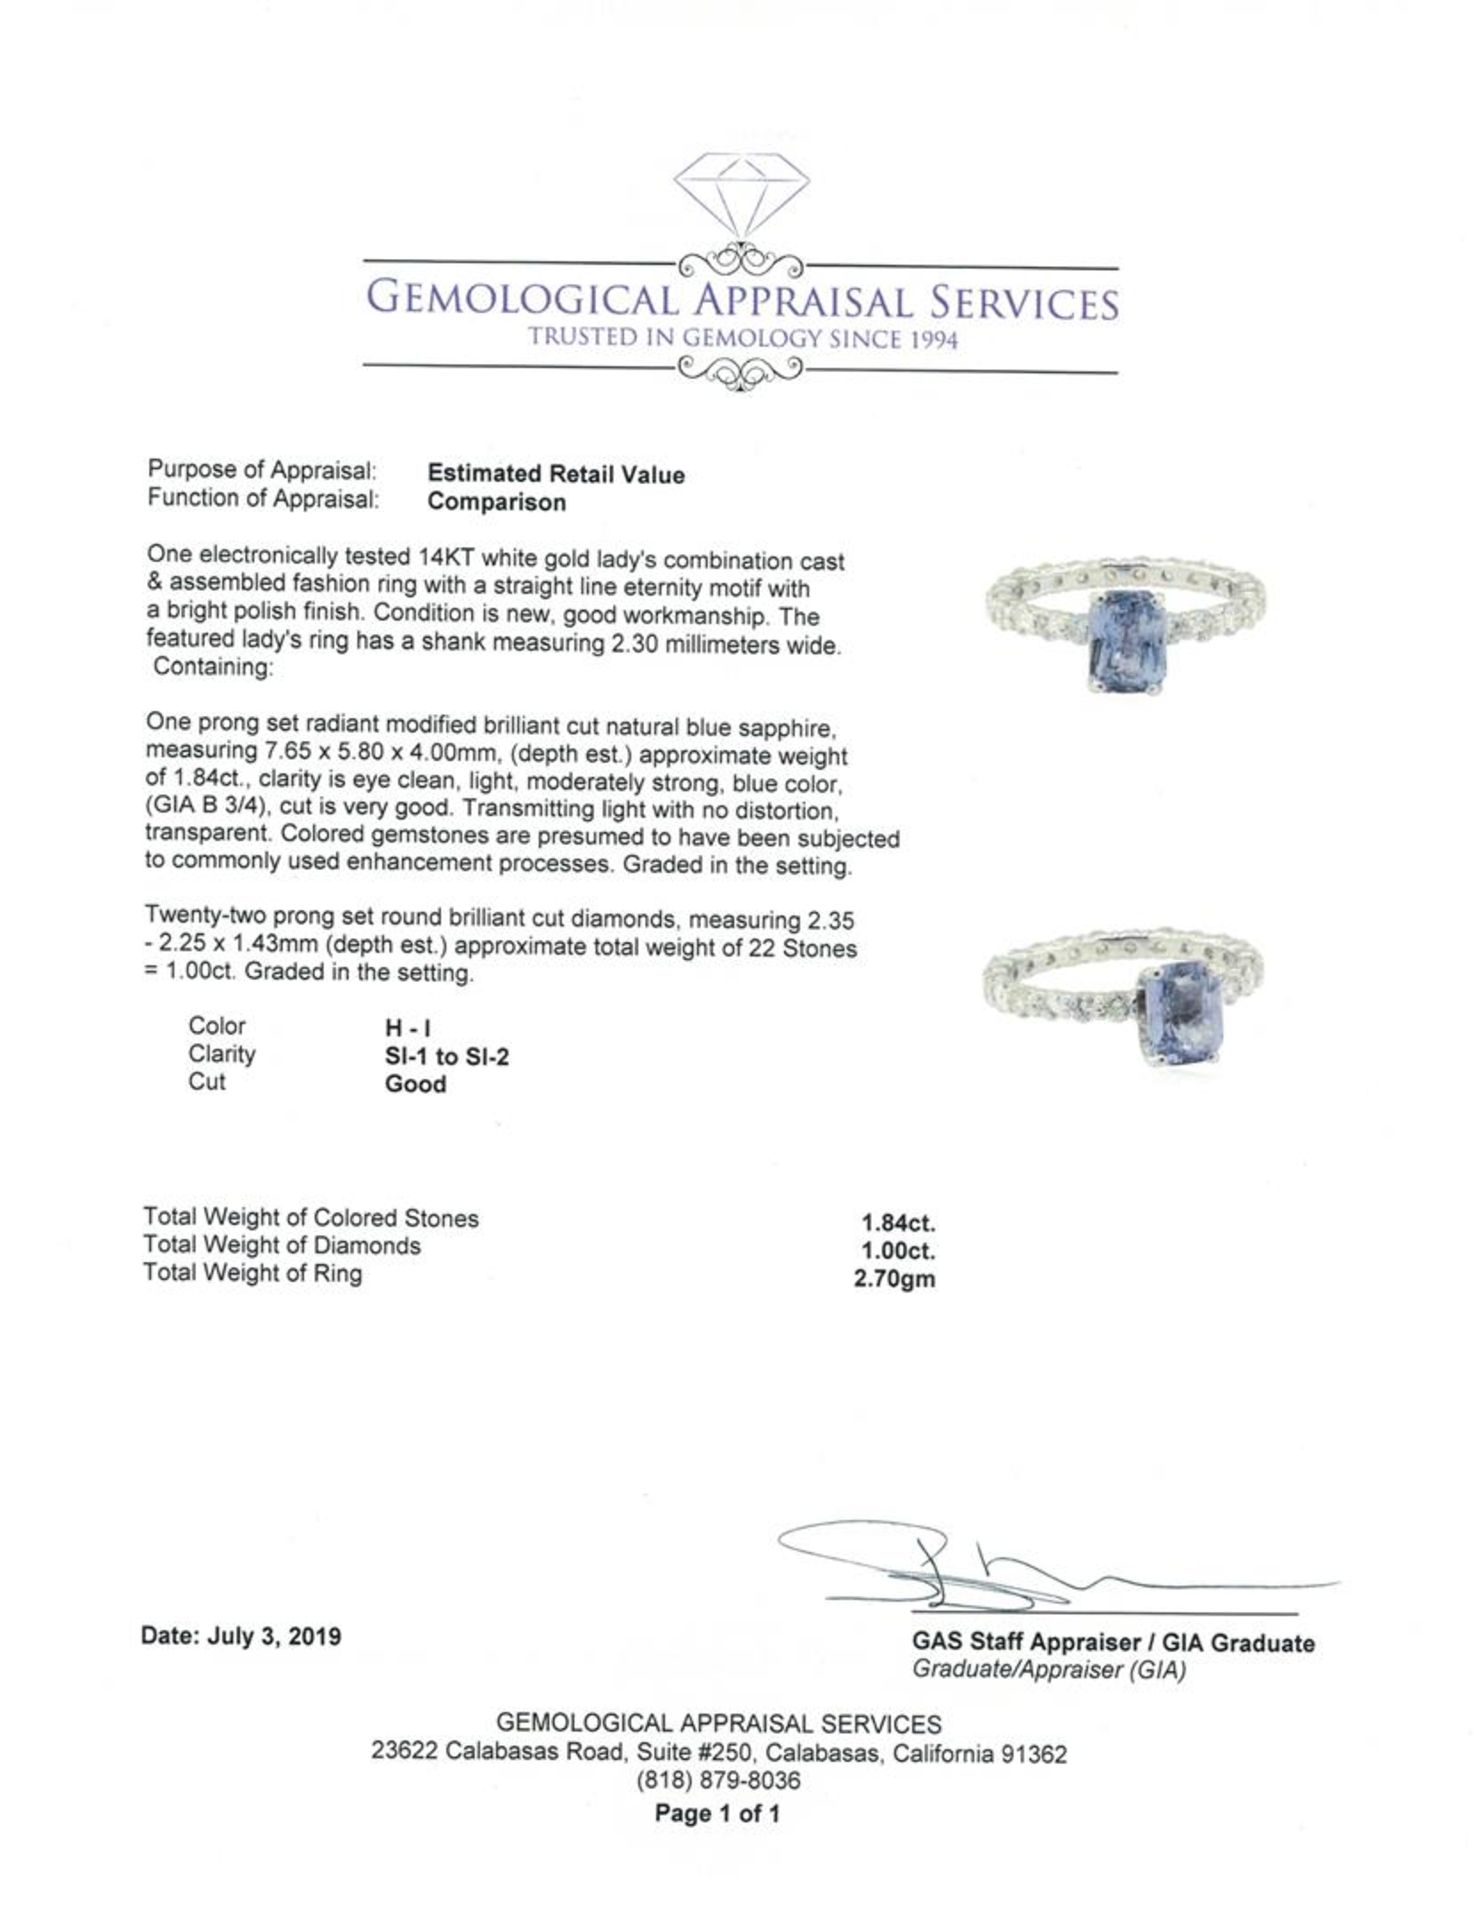 2.84 ctw Sapphire and Diamond Ring - 14KT White Gold - Image 5 of 5